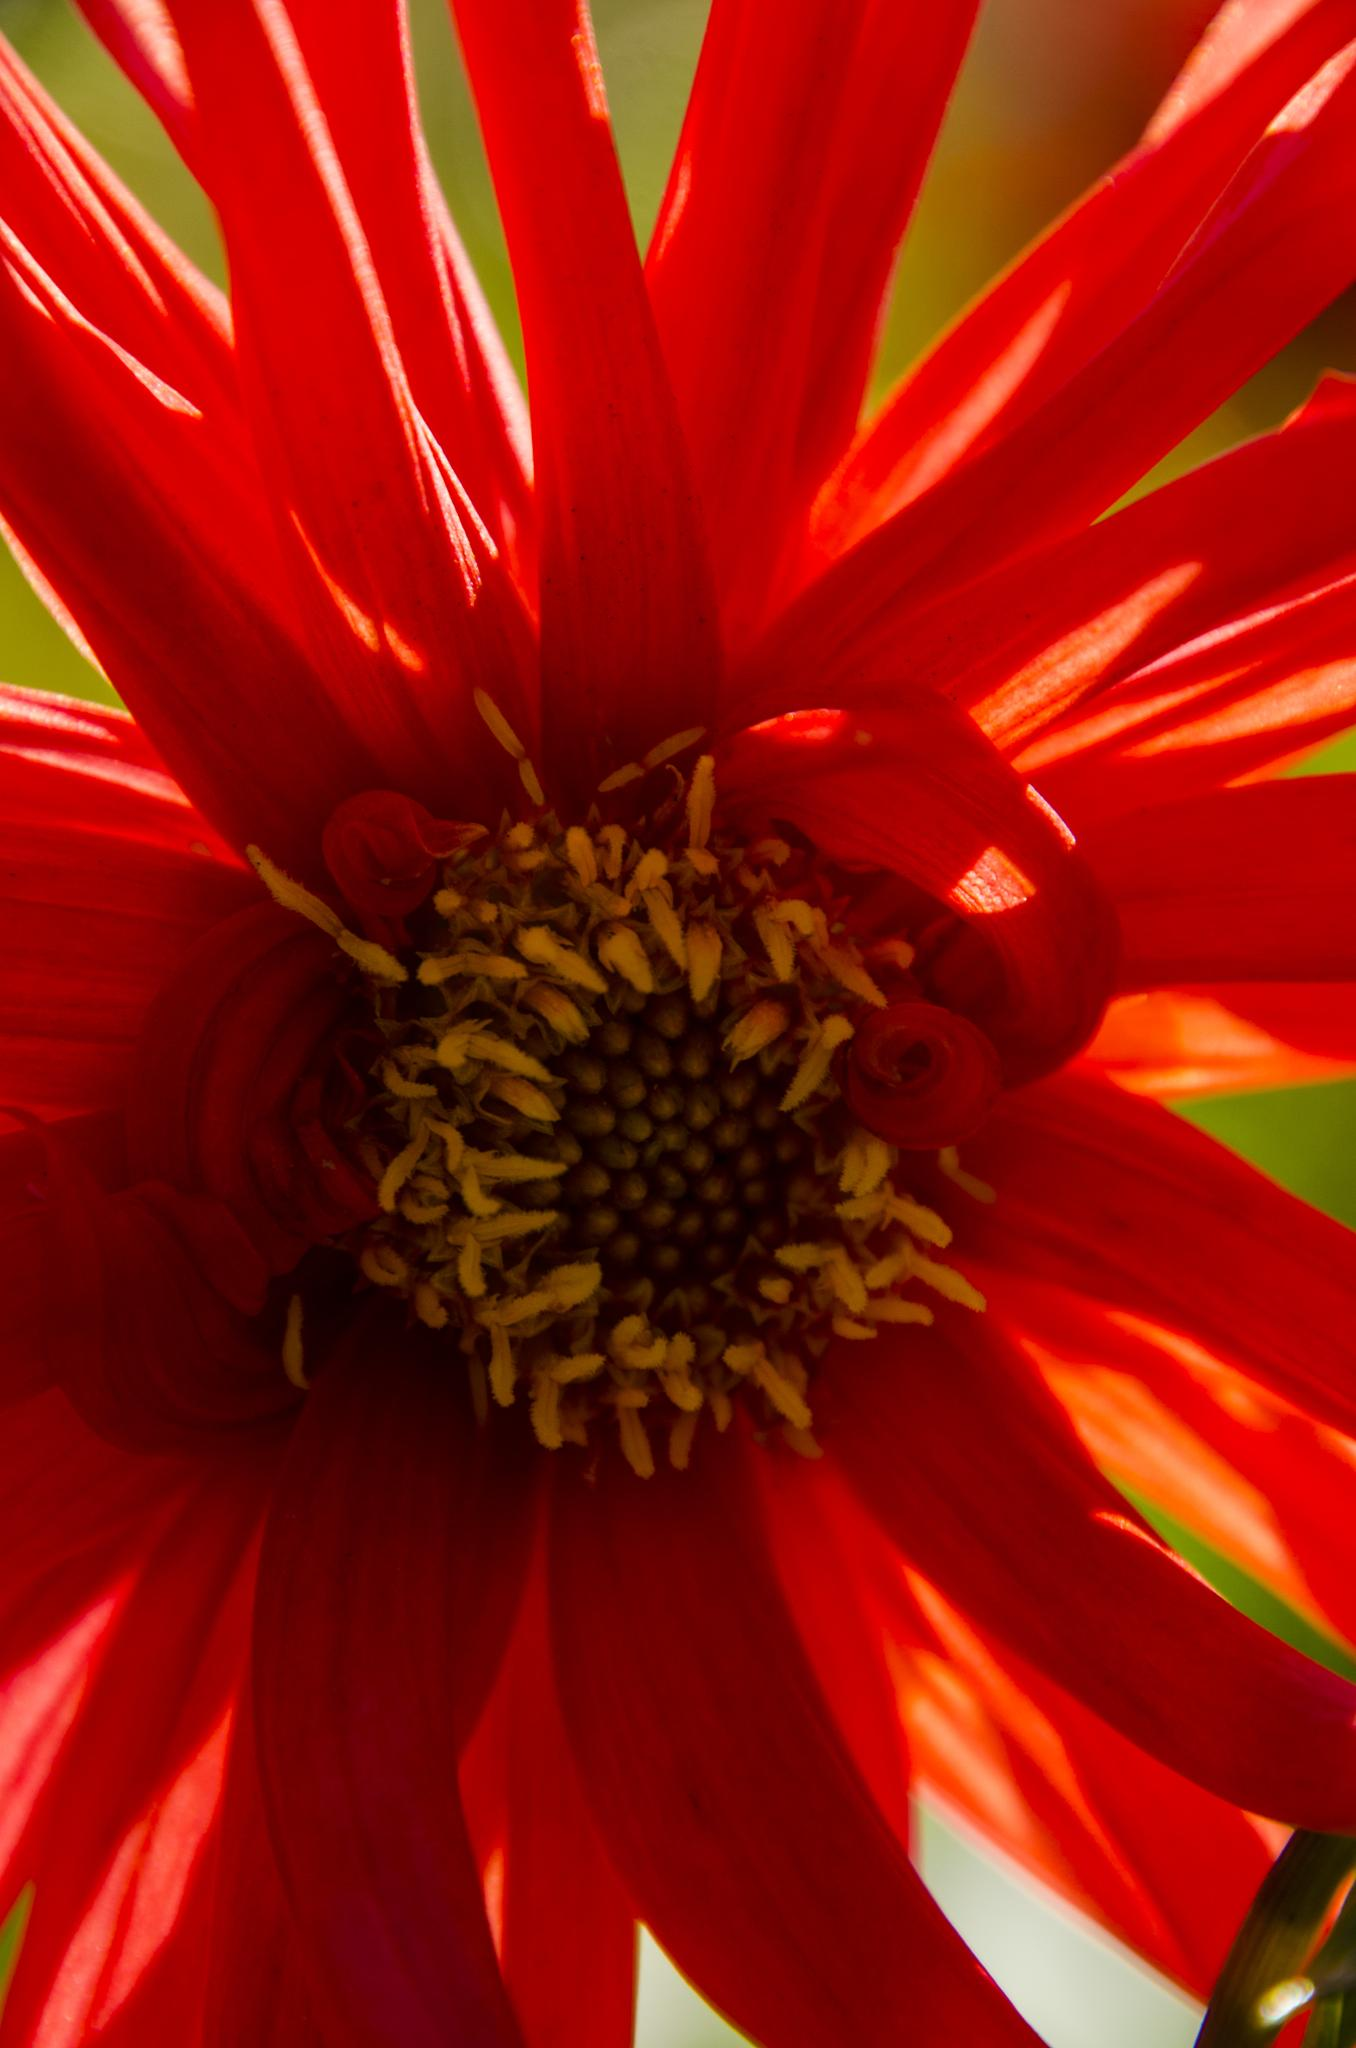 Red flower by Johnny Lythell